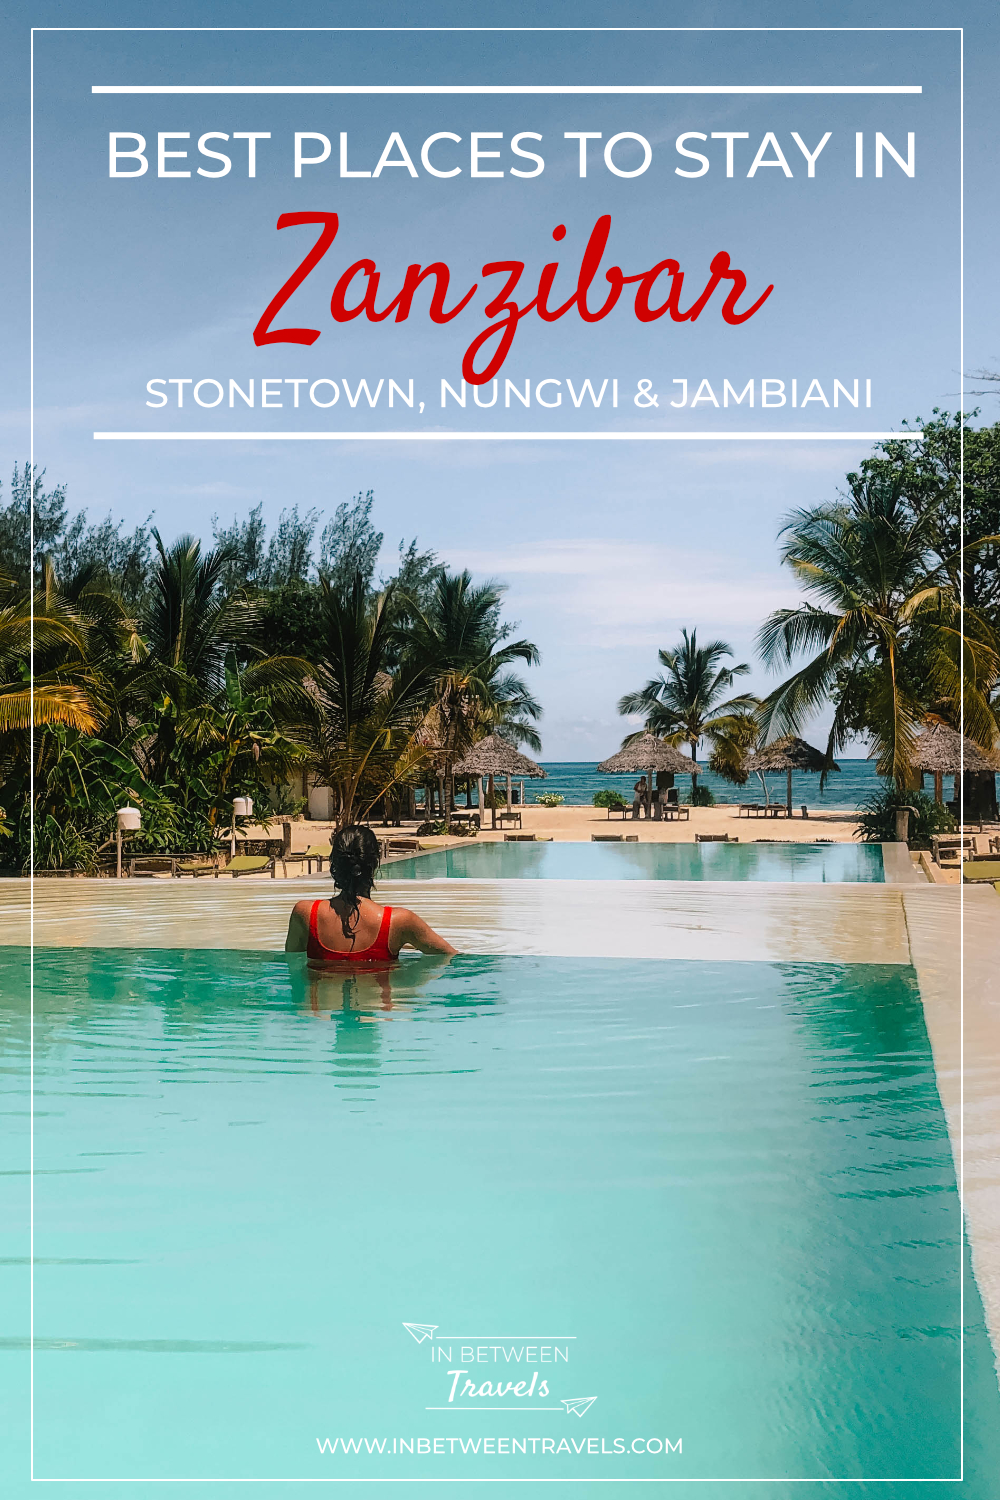 Where to stay in Zanzibar - Great places to stay